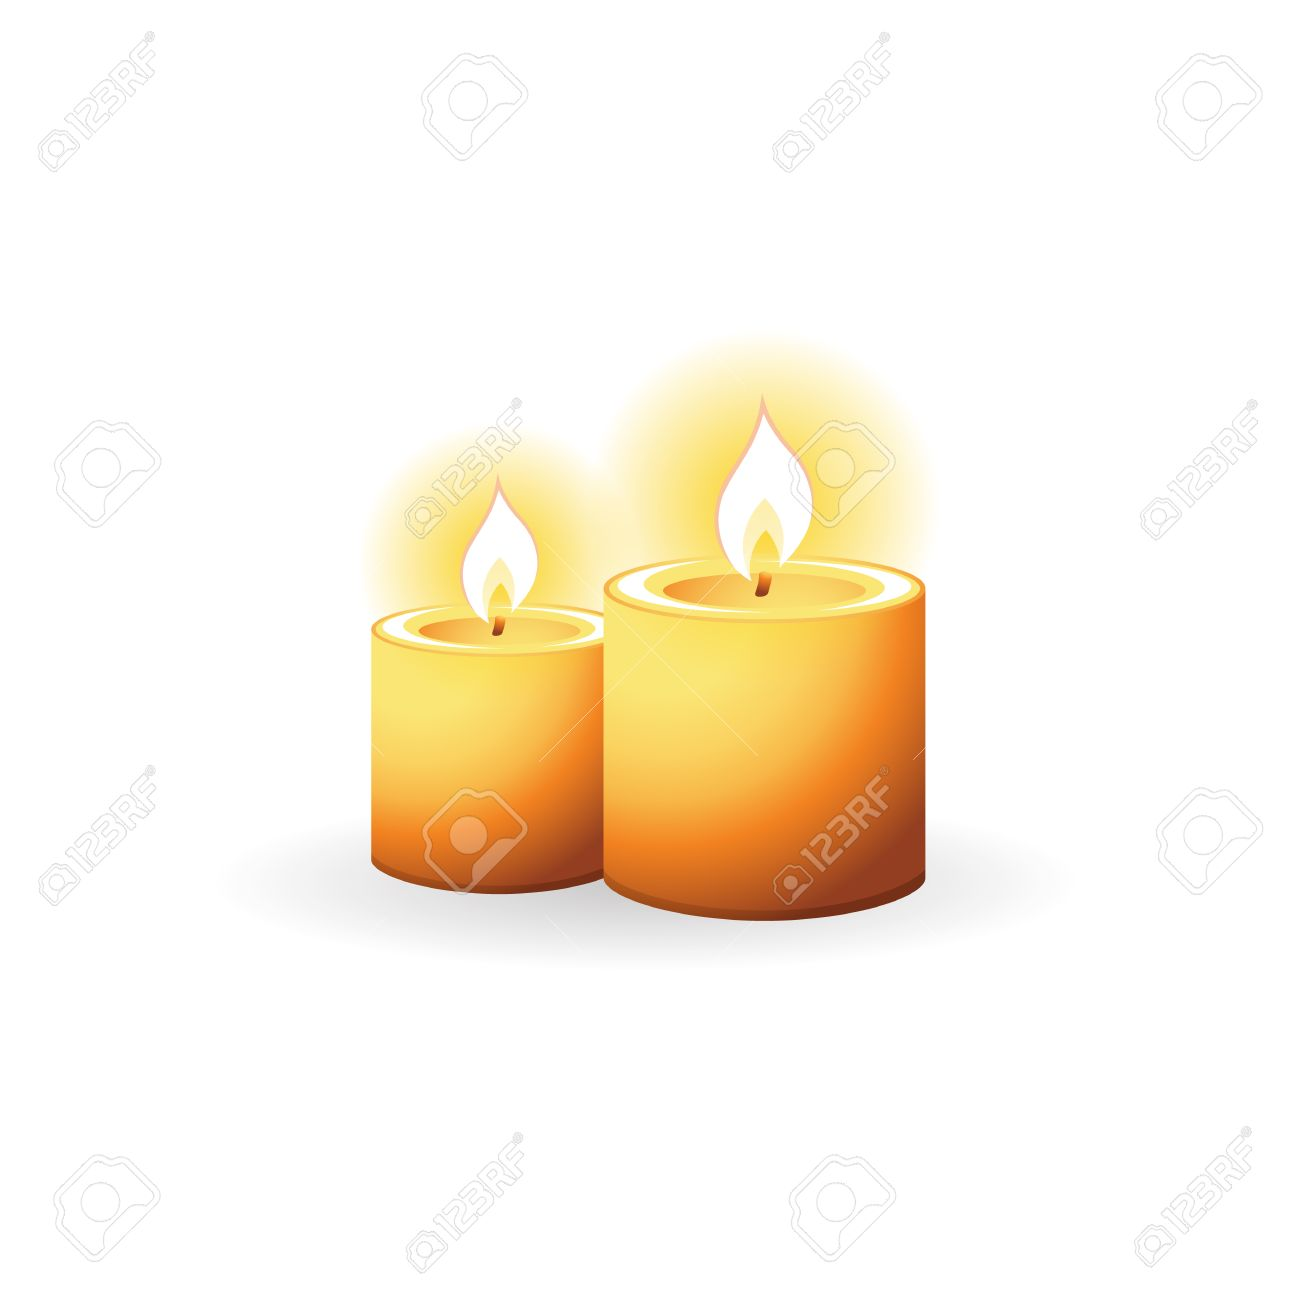 Candles Icon In Color. Light Memorial Fire Royalty Free Cliparts ... for memorial candle clip art  565ane